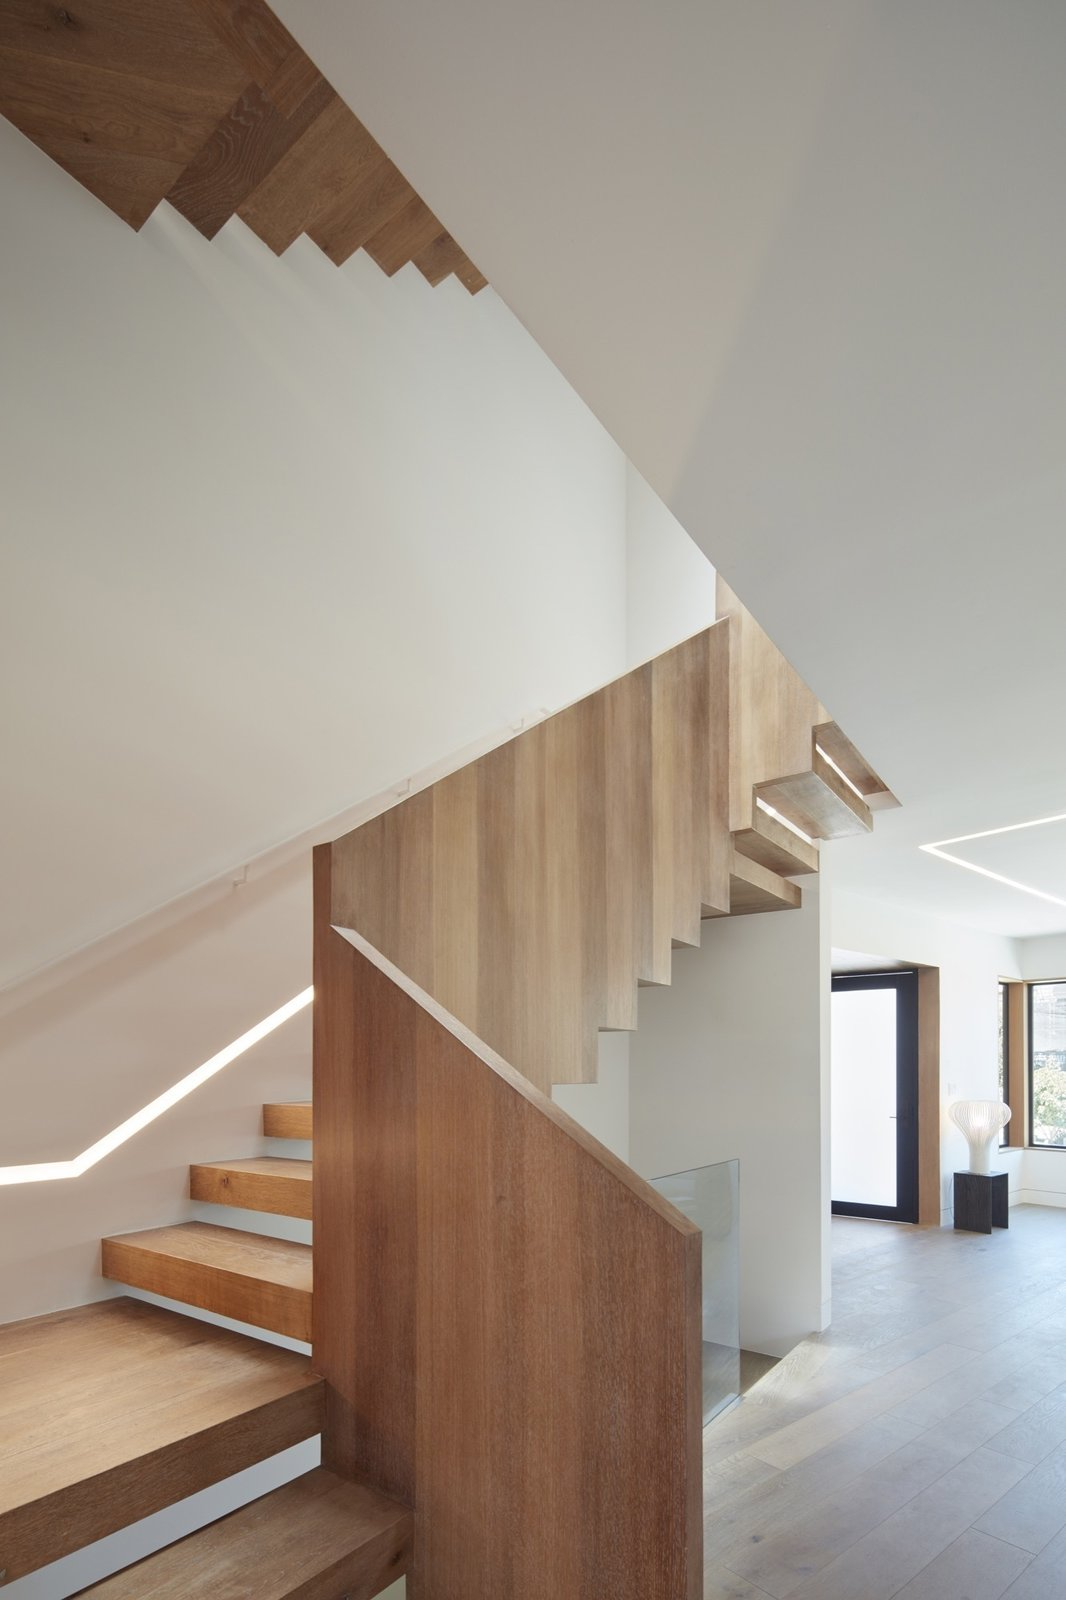 Staircase Tagged: Staircase, Wood Tread, and Wood Railing.  Noe Valley House by Leibal